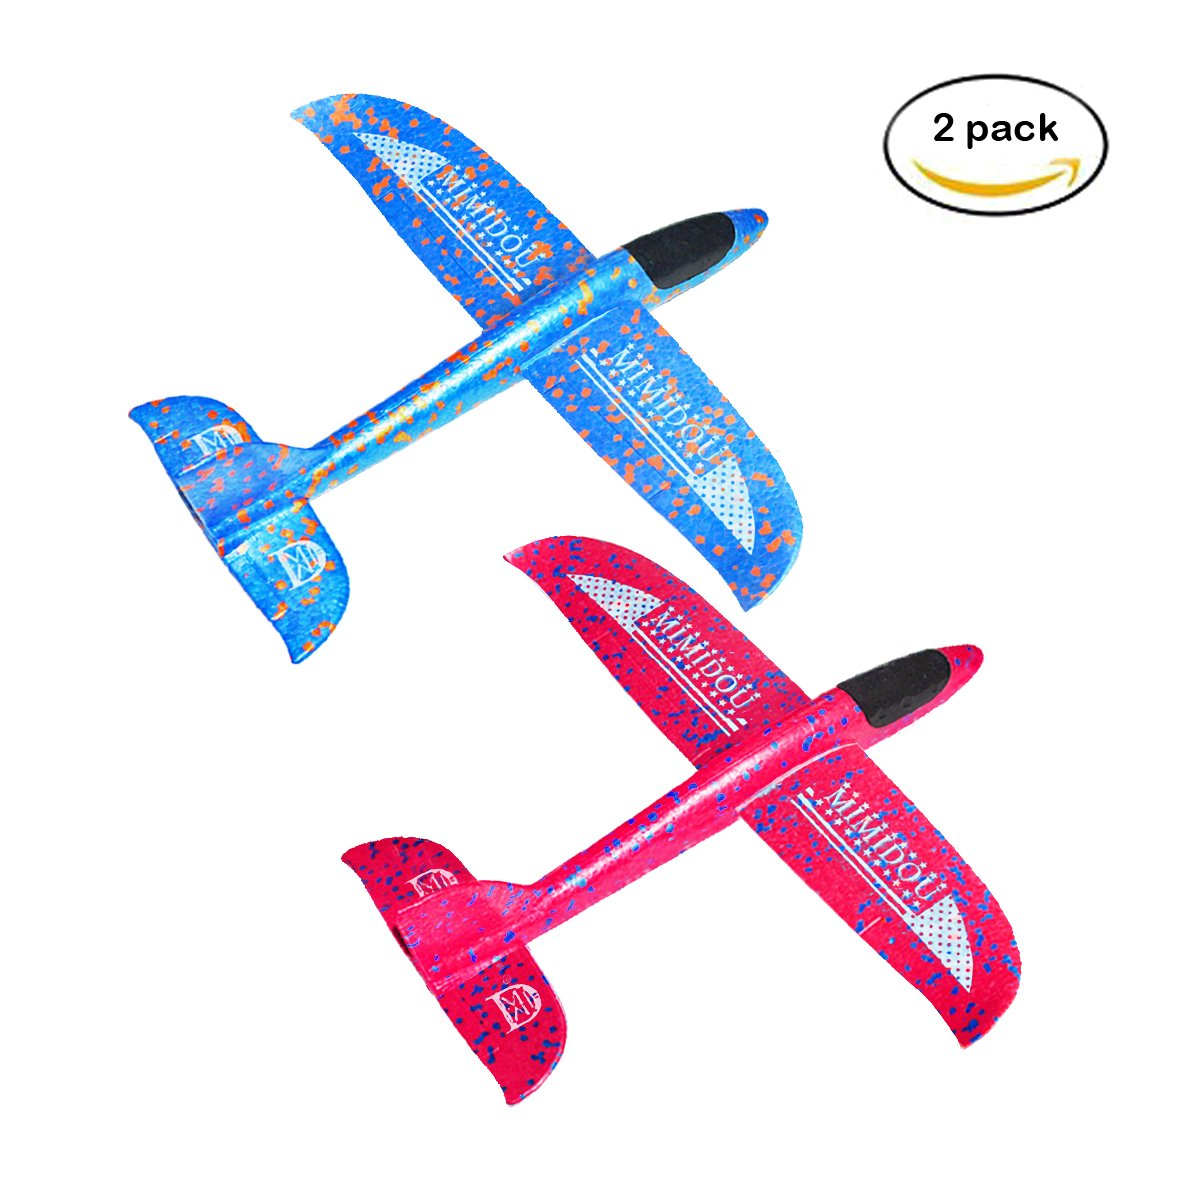 MIMIDOU New Aerobatic Airplane 2 flight mode 2 pack glider plane throwing foam aircraft outdoor sports flying toy for kids as gift,by